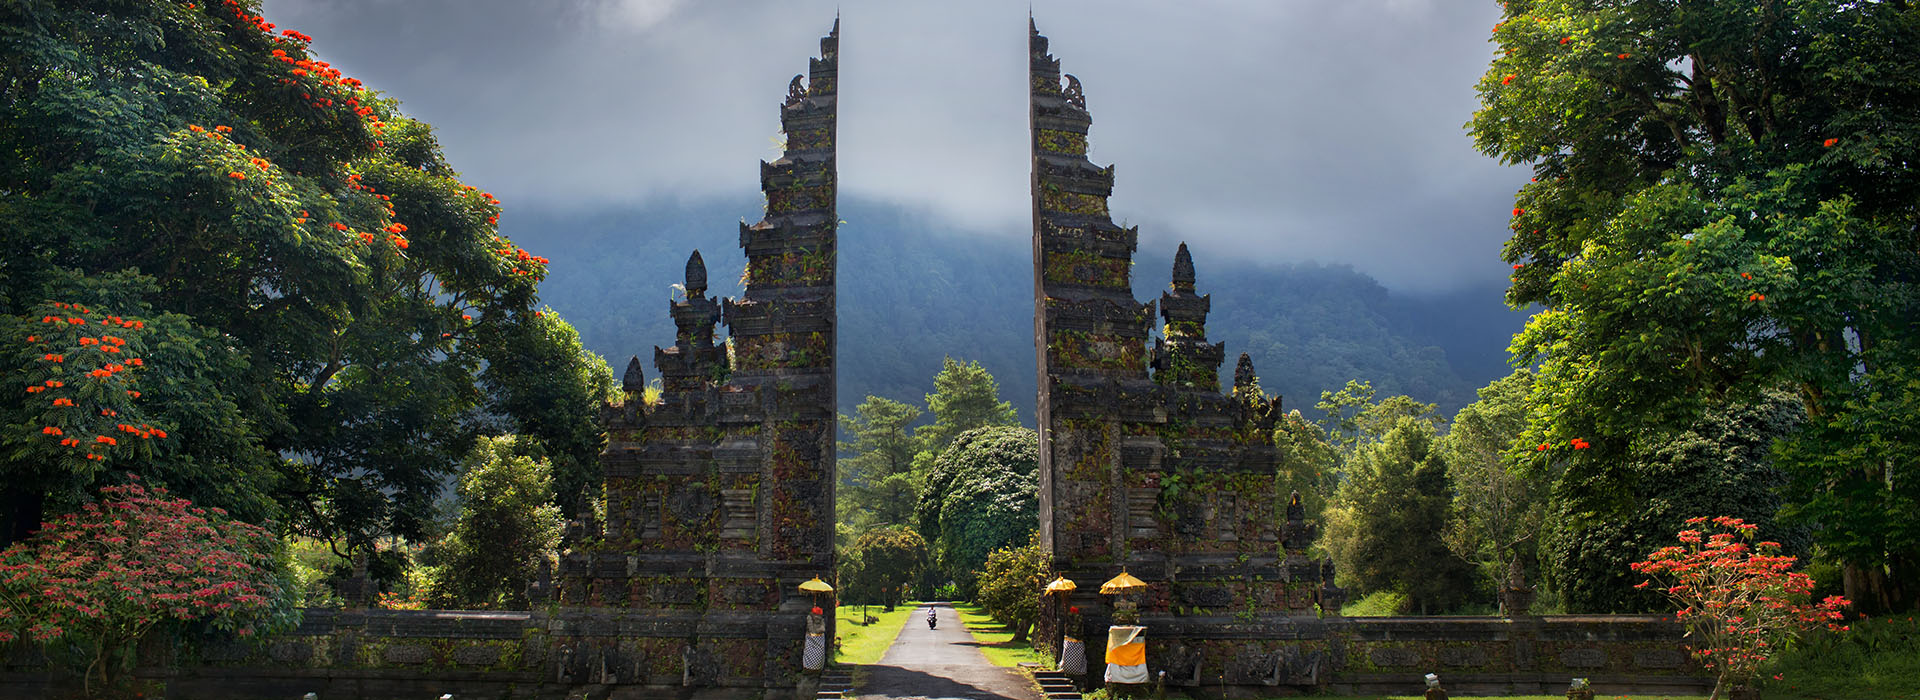 Indonesian gates